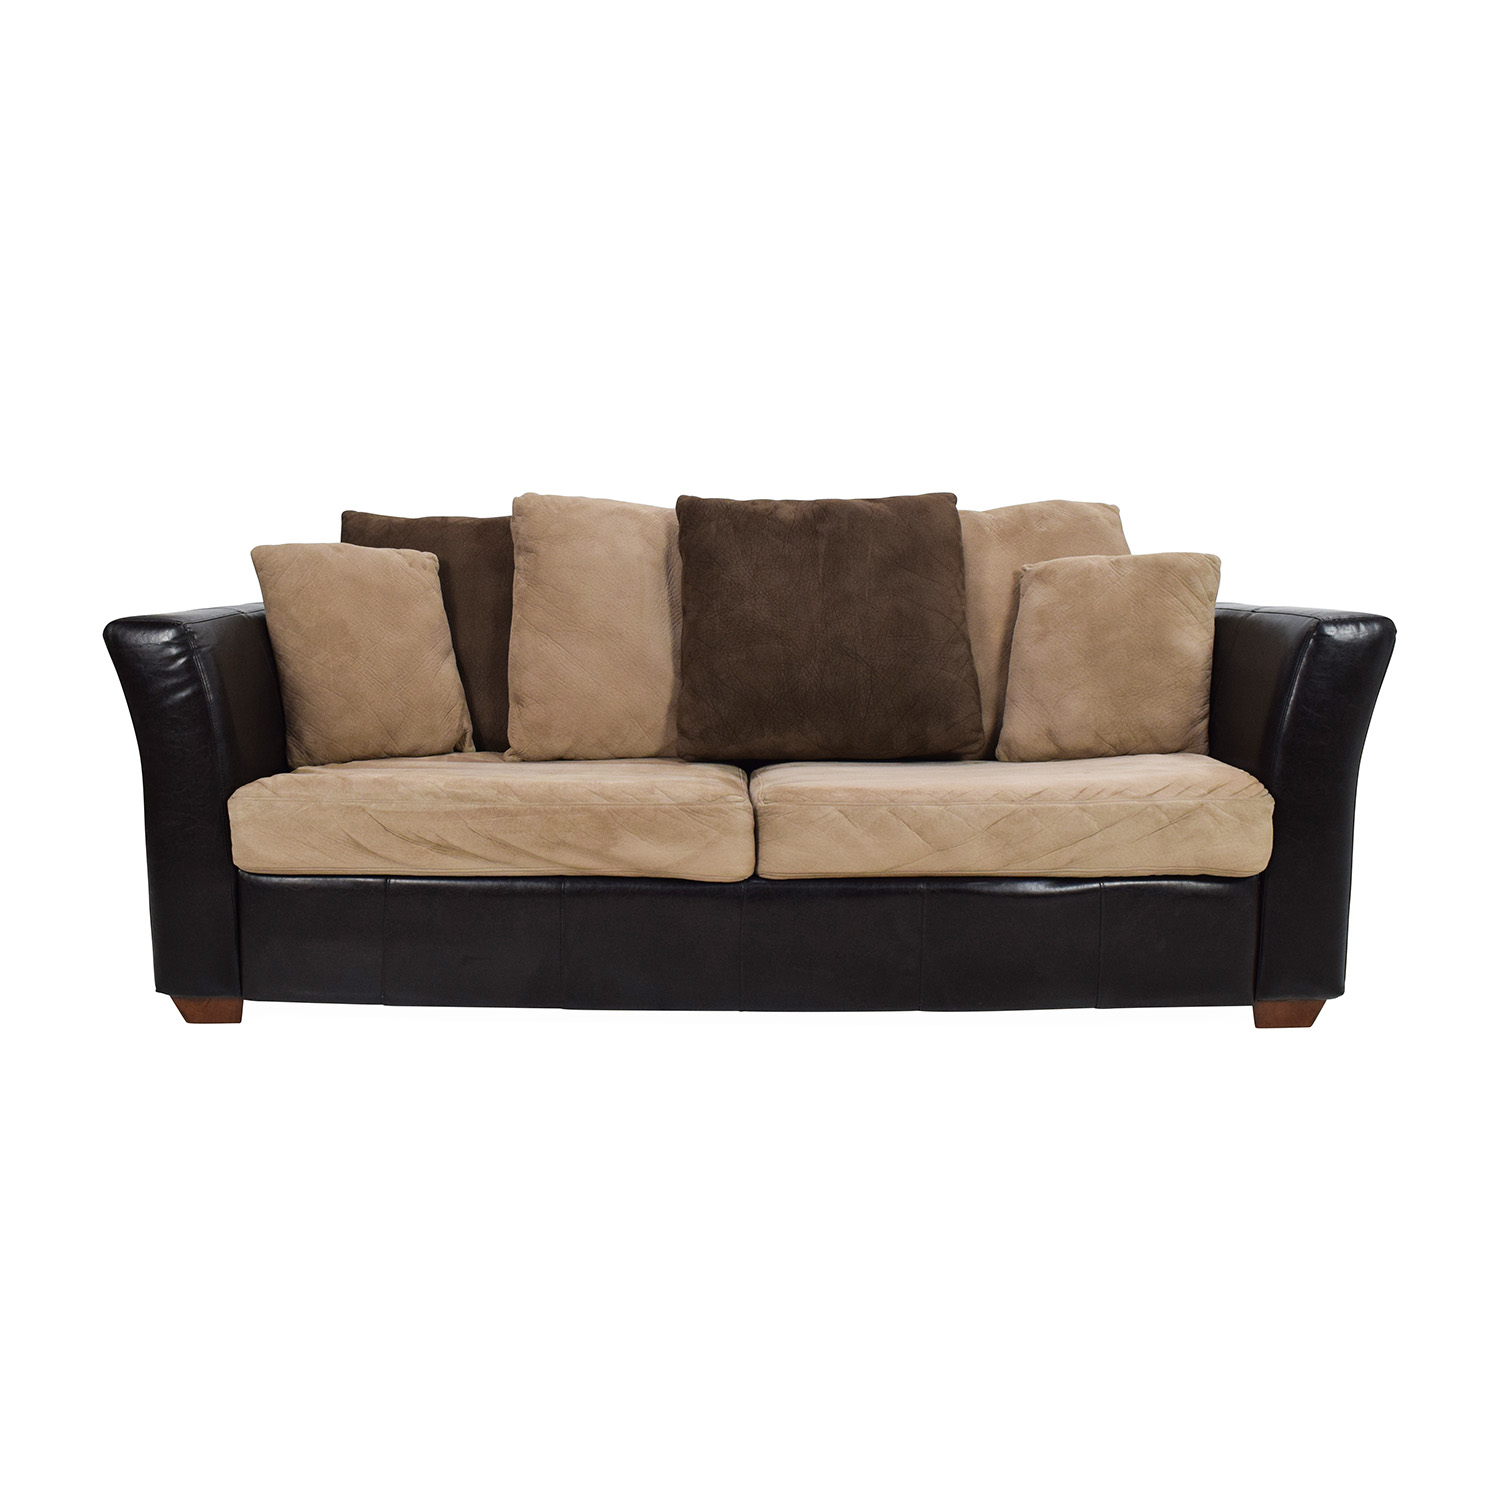 Jennifer Convertible Sofas 53 Off Jennifer Convertibles